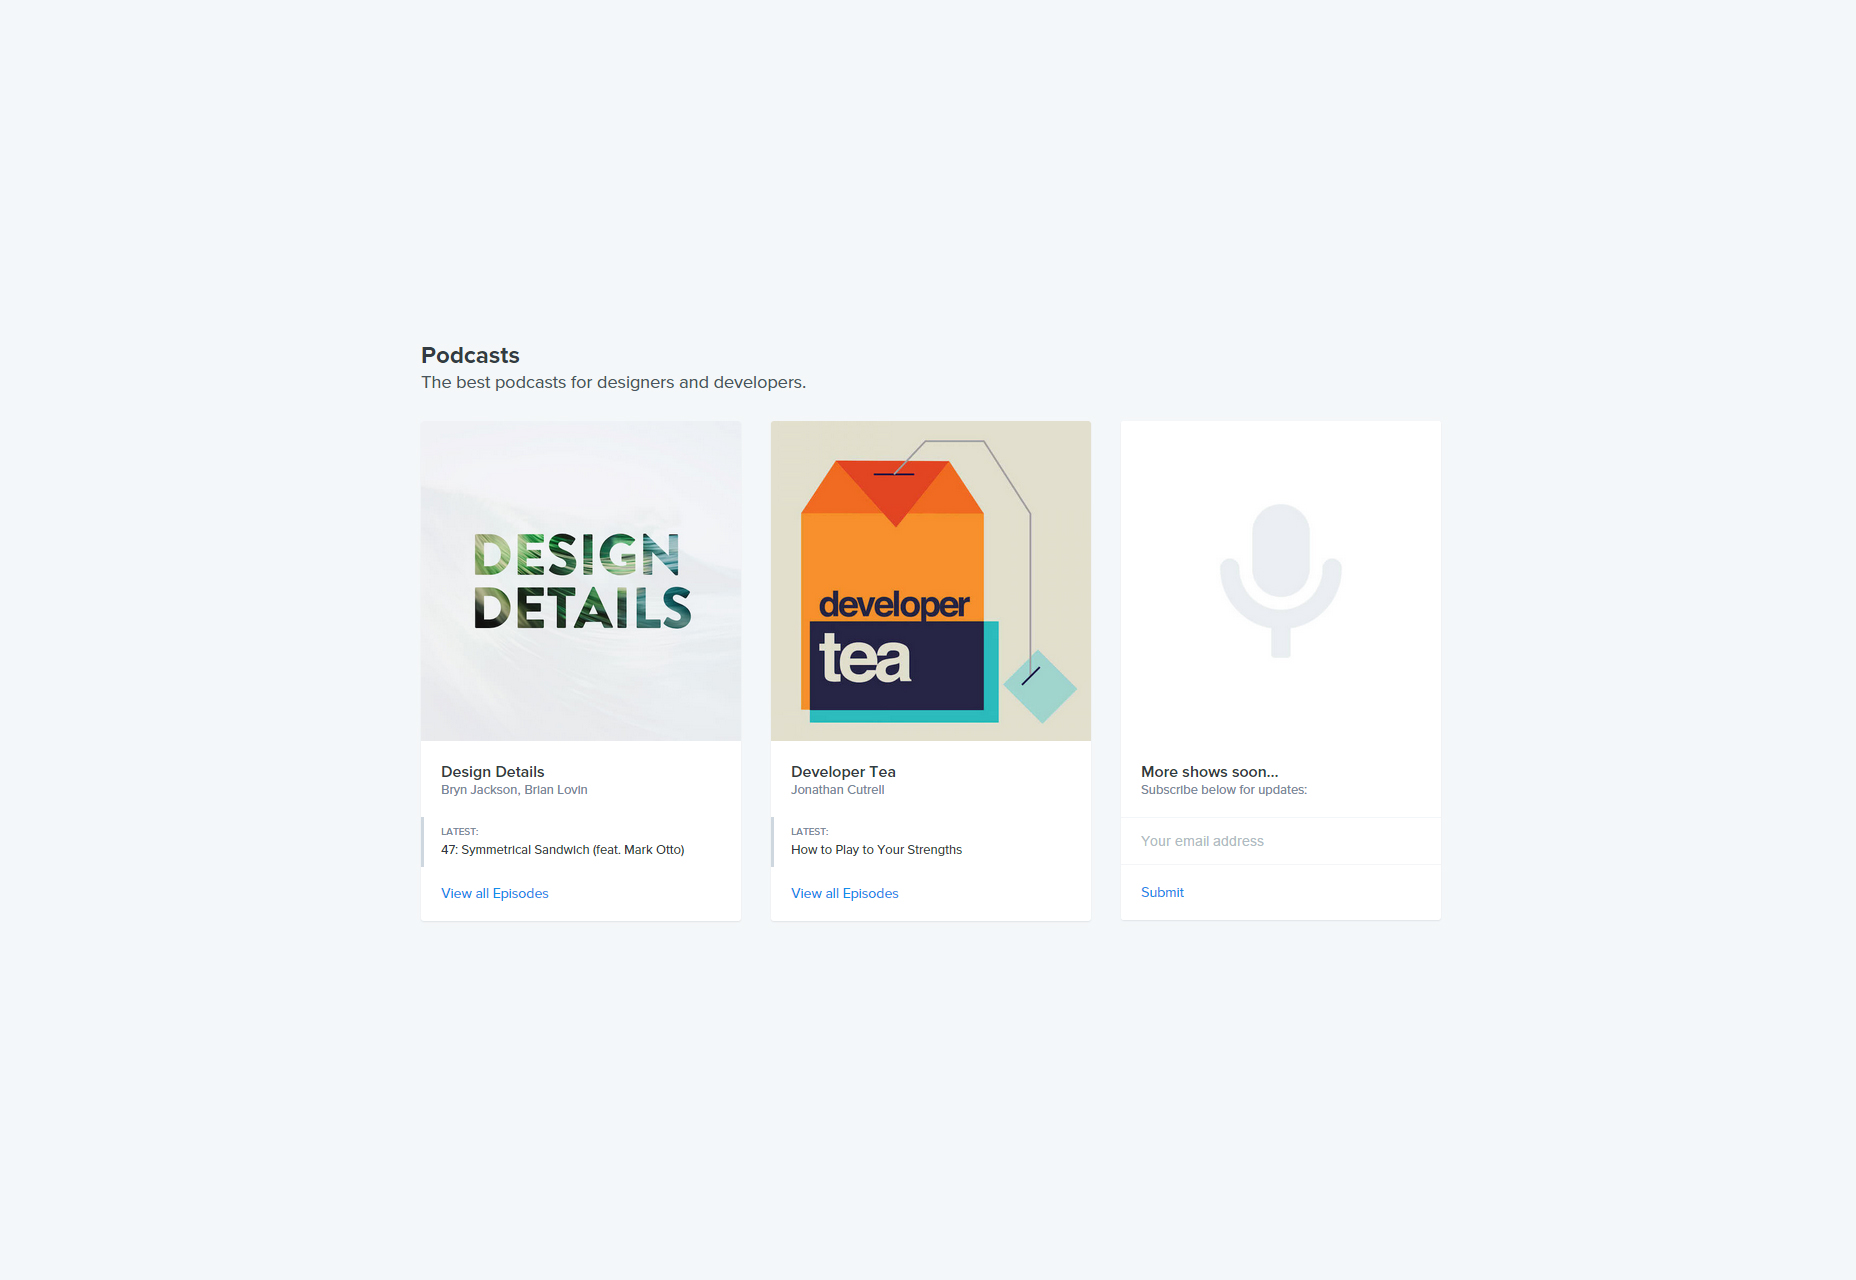 Spec: Learning Podcasts for Designers and Developers.